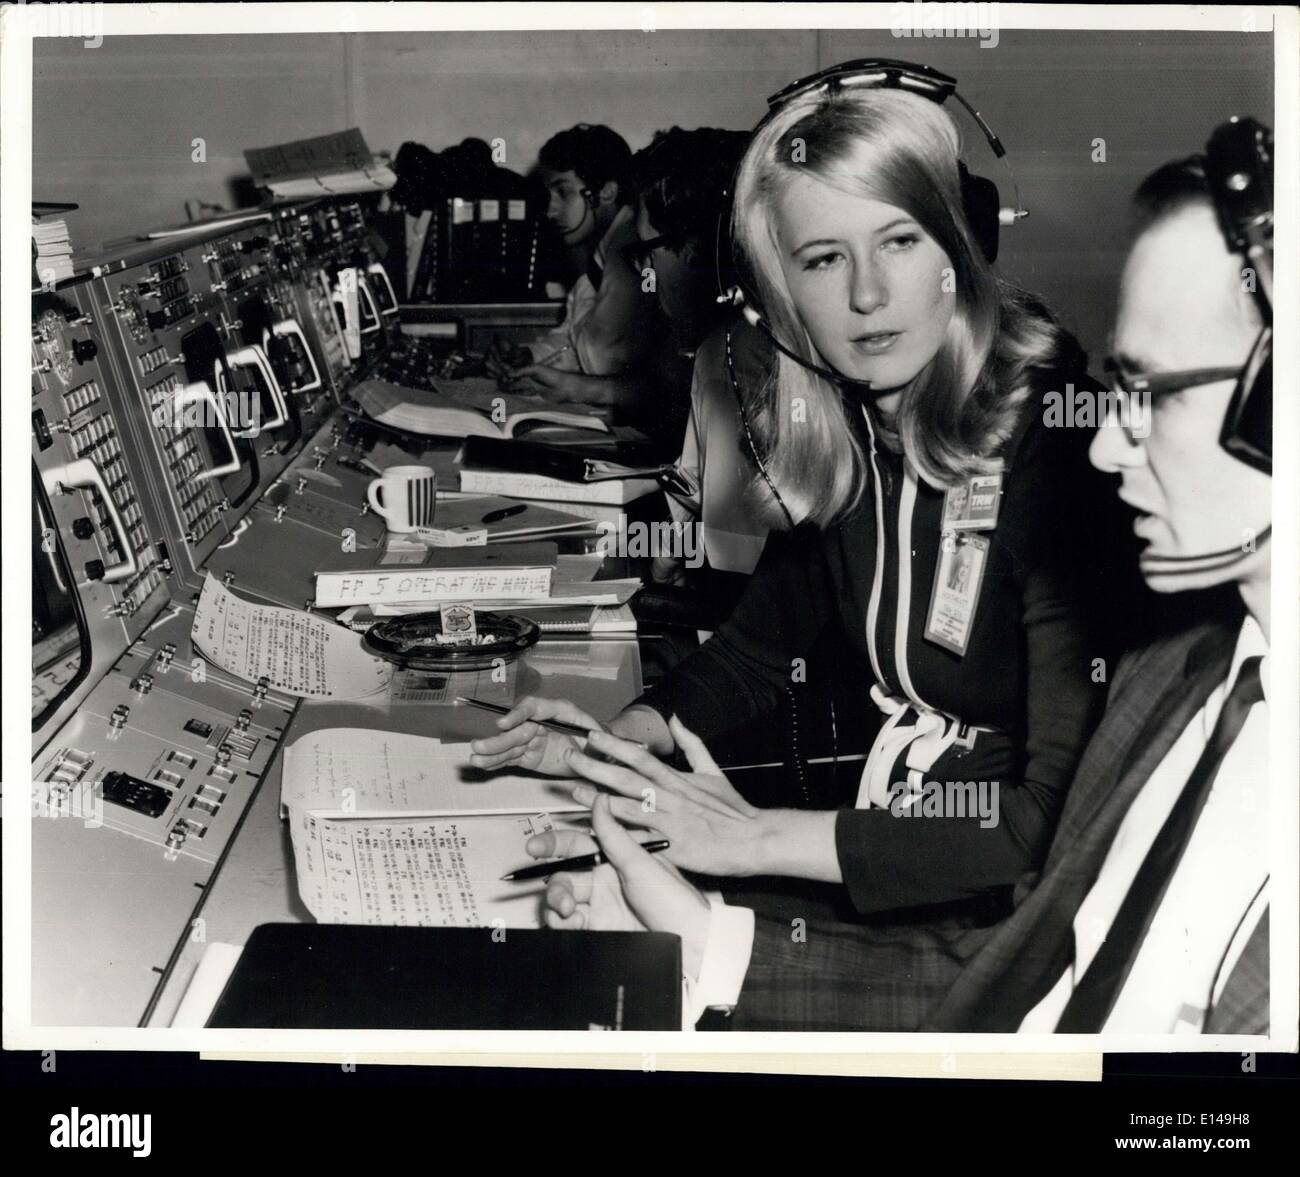 Apr. 17, 2012 - Poppy Northcutt, a mathematician at the Houston Operations of TRW's Systems Group, staffs a console in NASA's Mission Control Center-Houston and is responsible for computing manoeuvres which would bring the Apollo spacecraft home from the Moon. Poppy was on duty in the Control Center when Apollo 8 and Apollo 10 launched out of lunar orbit for their return to the Earth. The 25-year-old native of Dayton, Texas, joined TRW and the Apollo program immediately following her graduation from The University of Texas - Stock Image